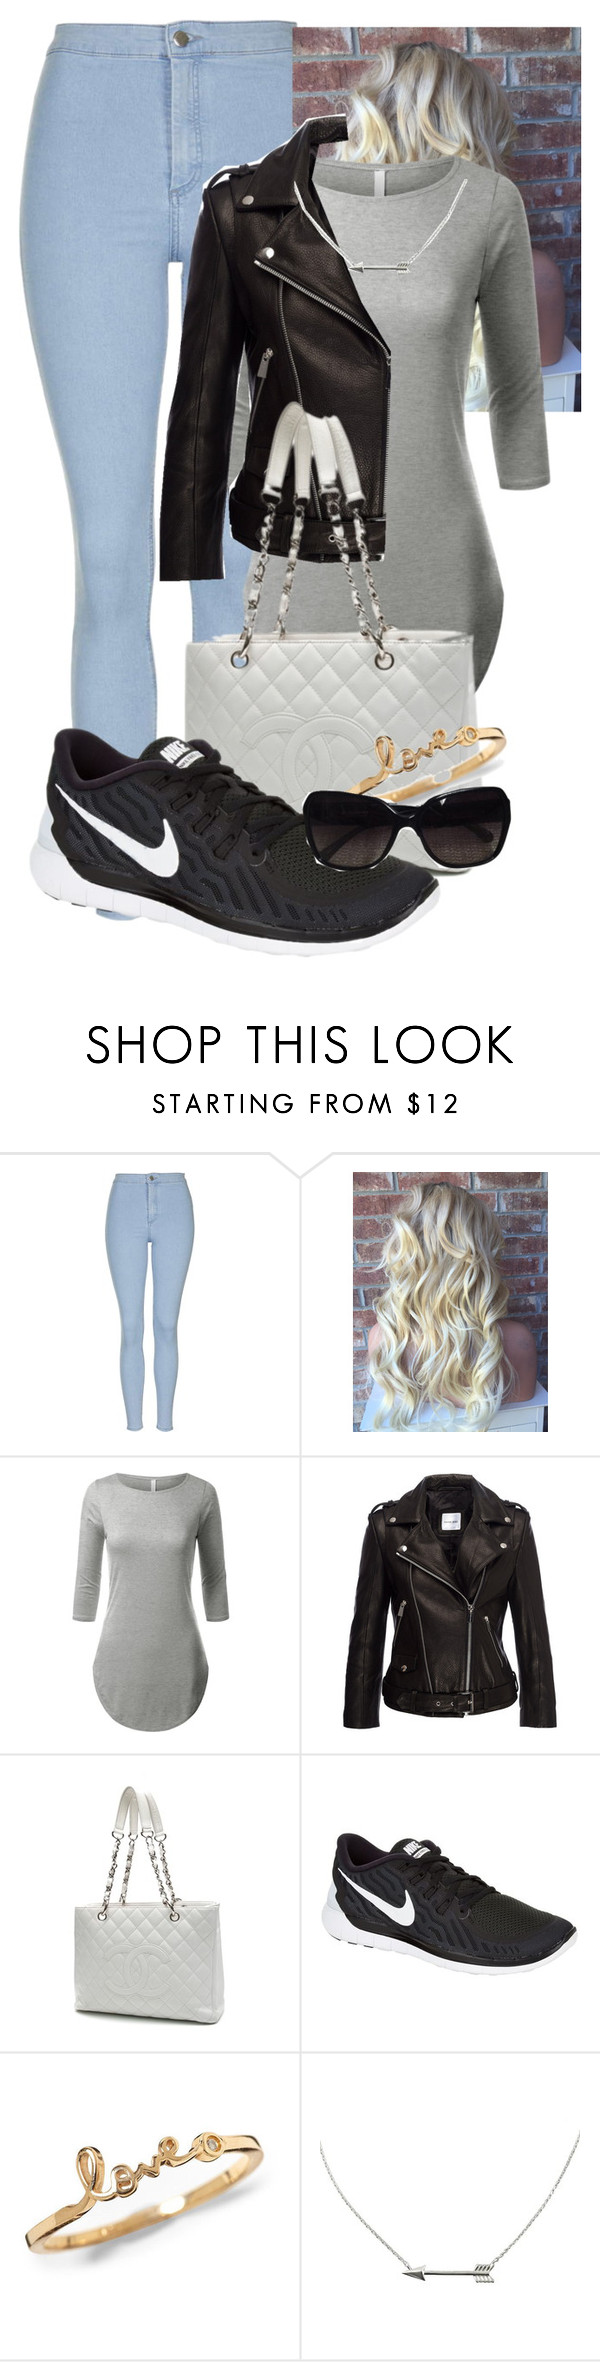 """""""Untitled #126"""" by lesliekabengele on Polyvore featuring Topshop, Chanel, NIKE, women's clothing, women, female, woman, misses and juniors"""